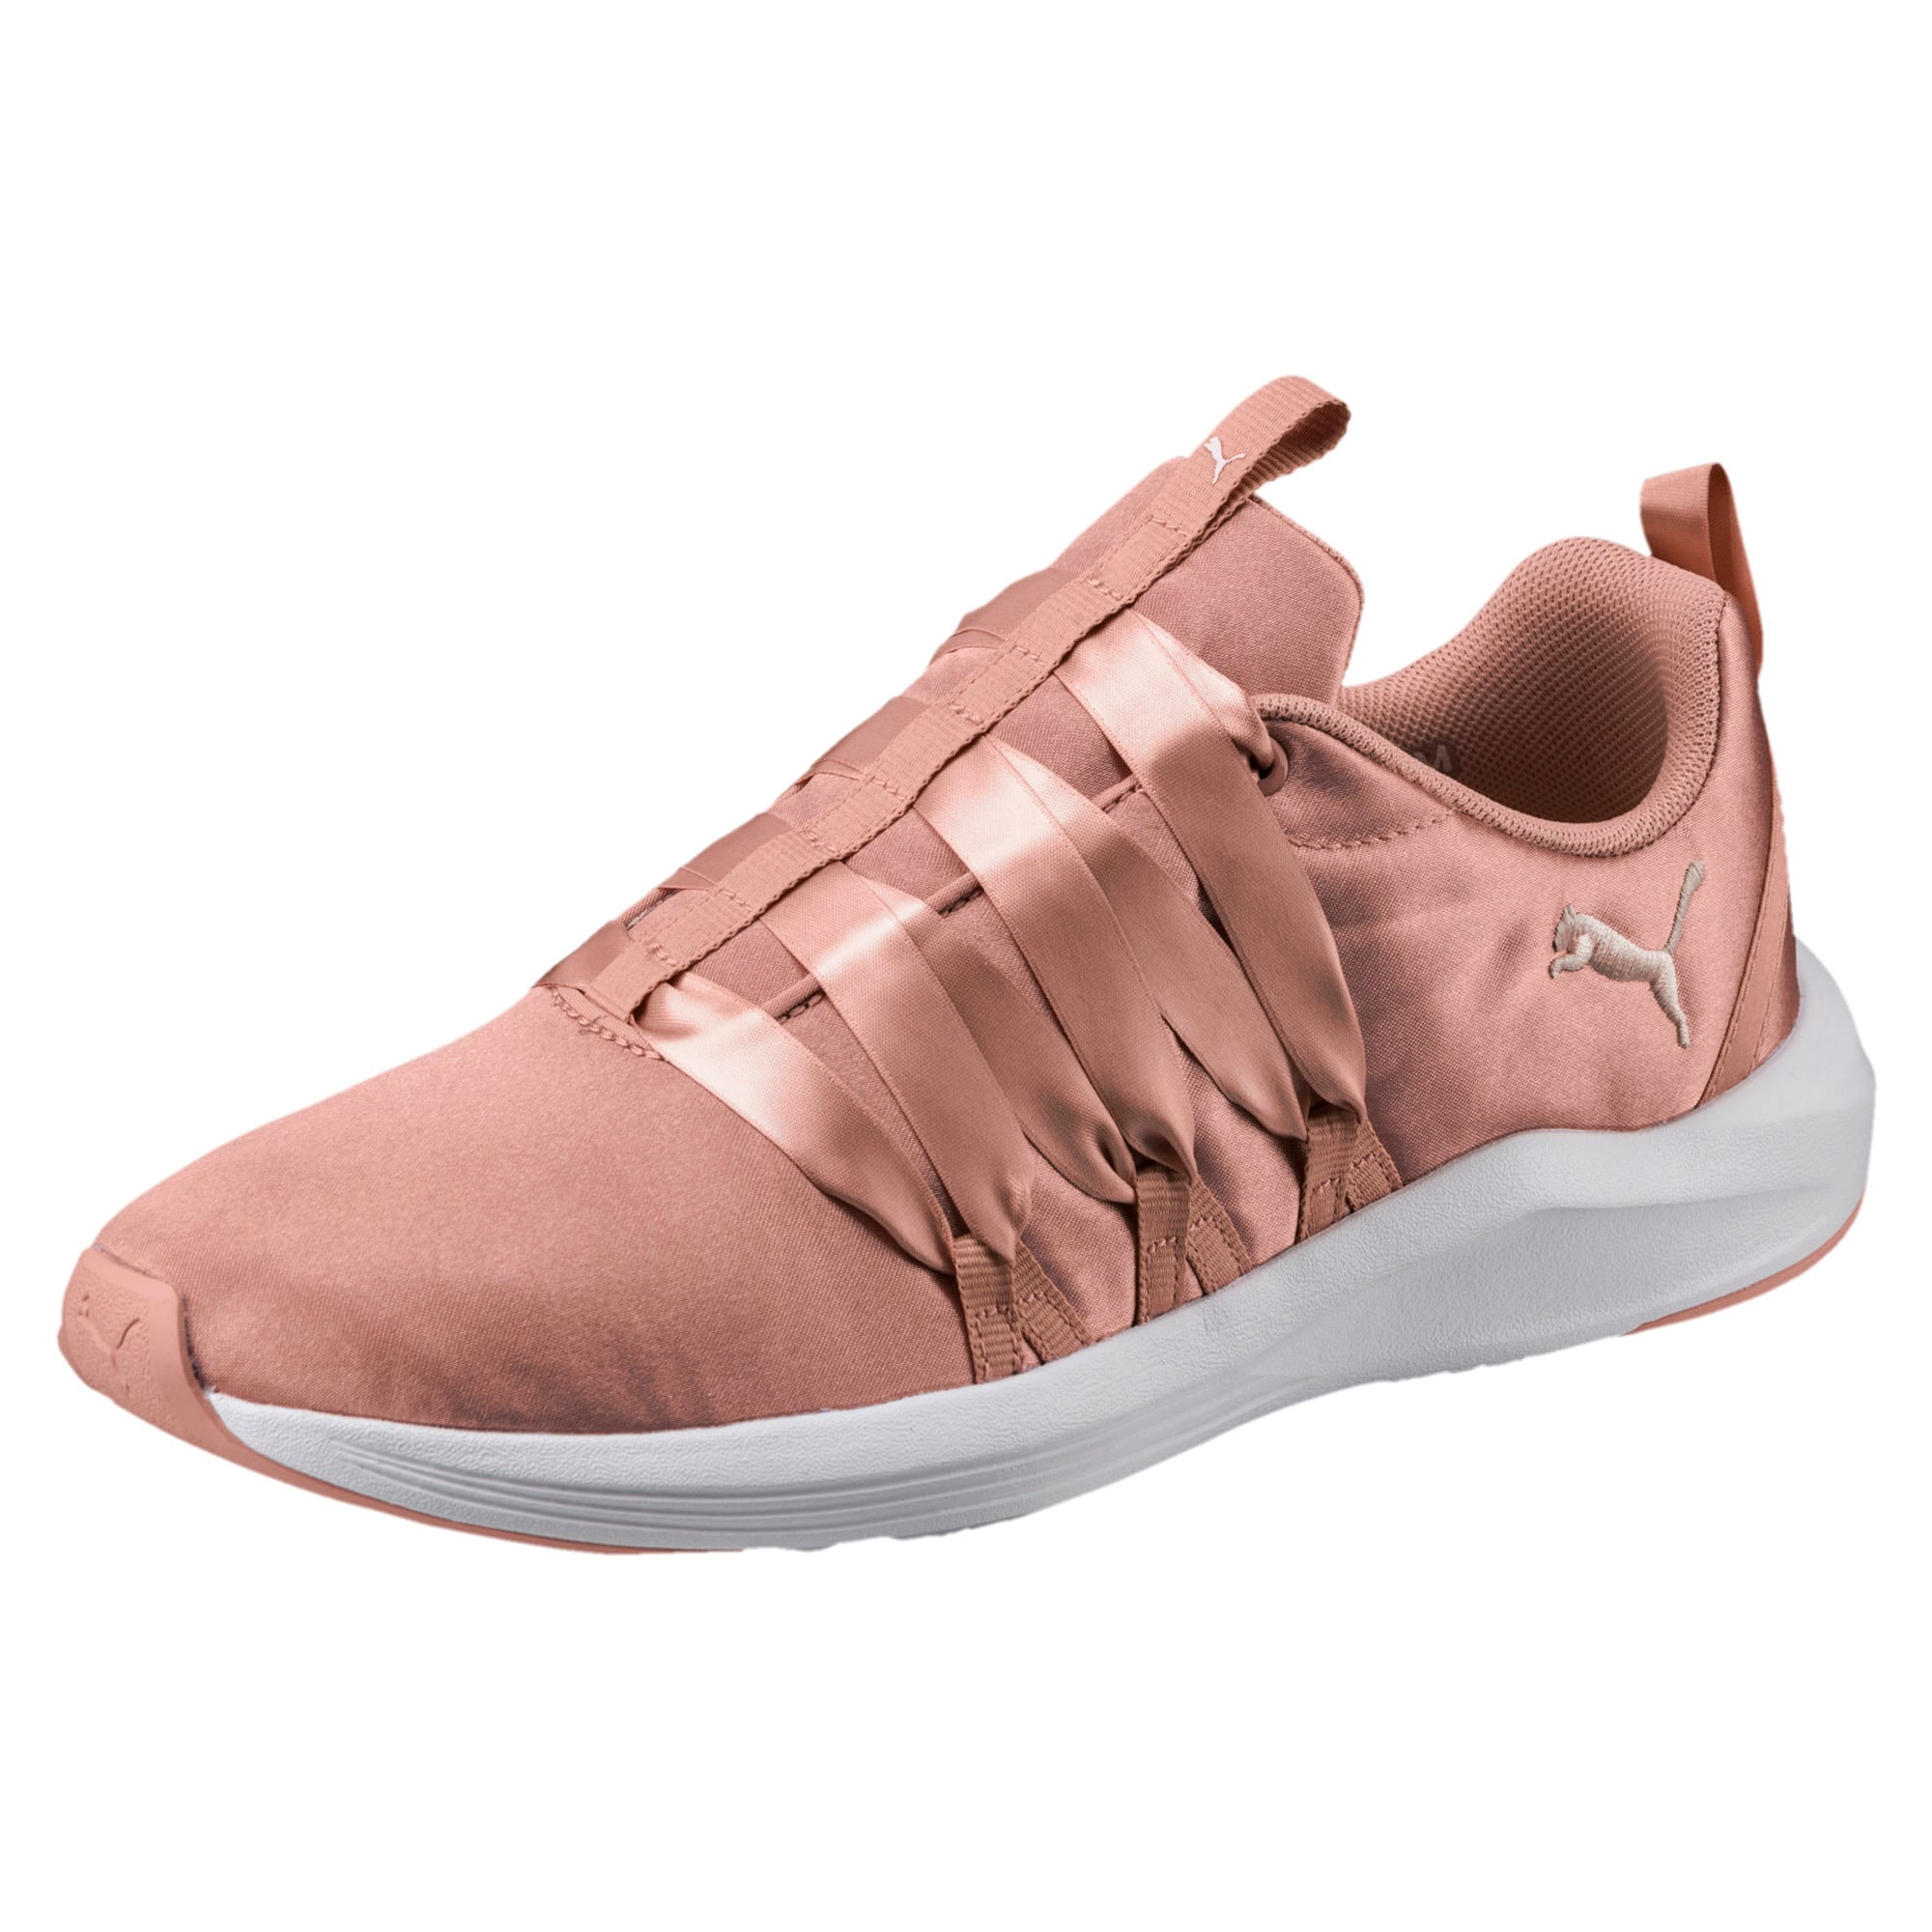 Thumbnail 1 of Prowl Alt Satin Women's Training Shoes, Peach Beige-Puma White, medium-IND